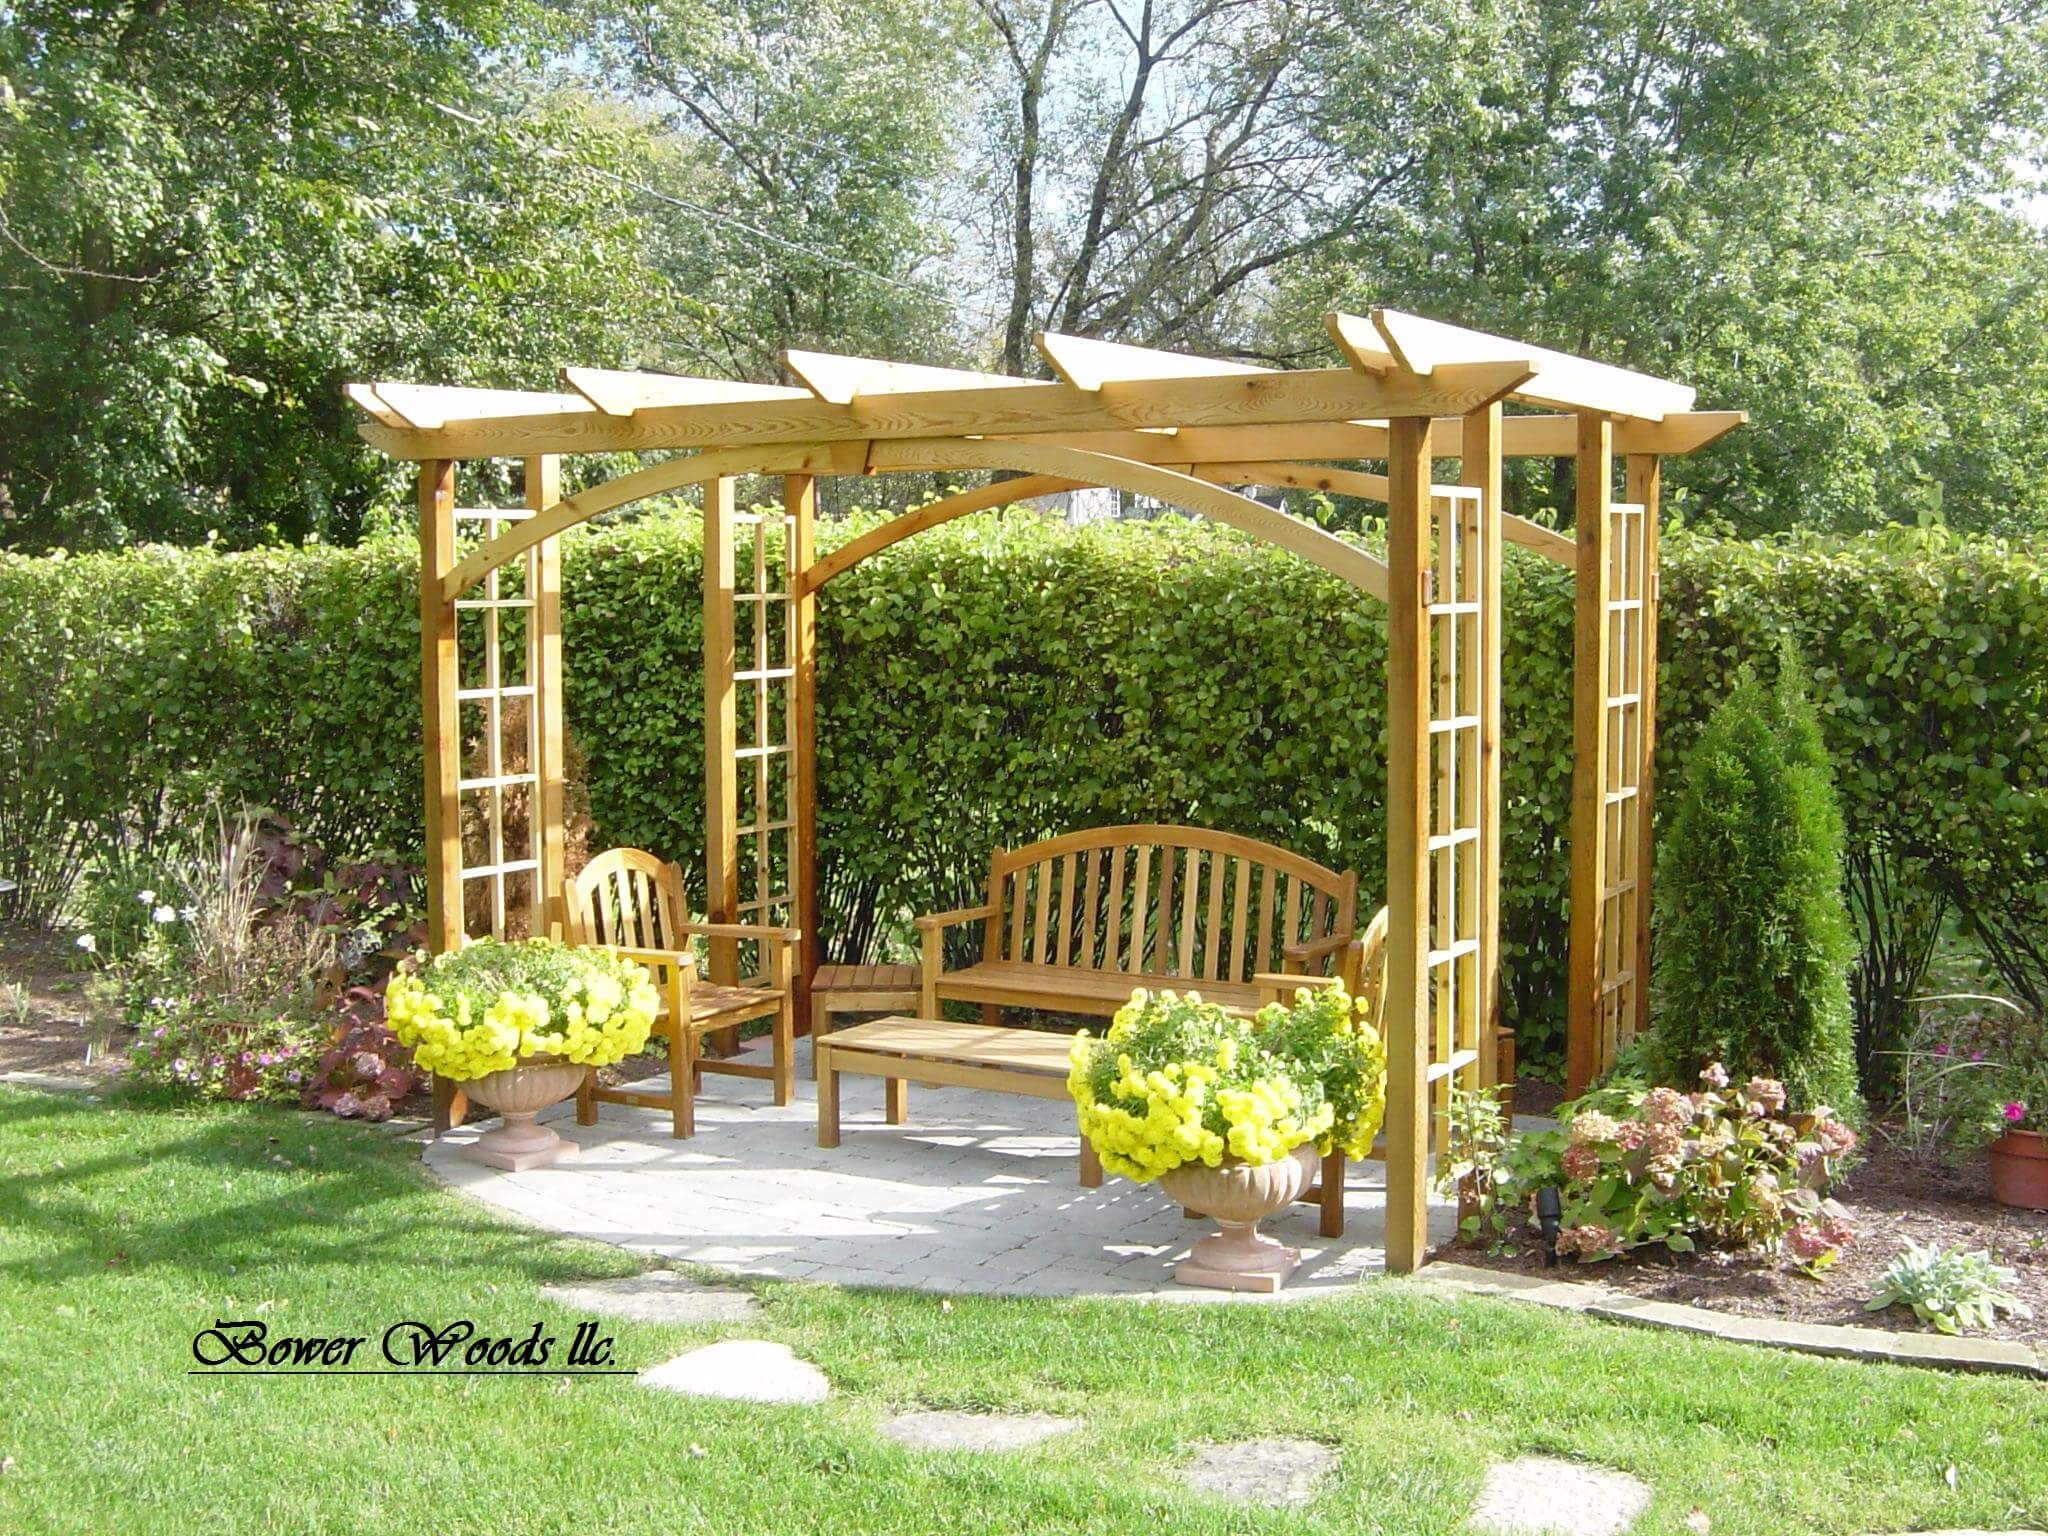 33 pergola ideas to keep cool this summer garden gazebo pergolas the pergola kits are the easiest and quickest way to build a garden pergola there are lots of do it yourself pergola kits available to you so that anyone solutioingenieria Gallery